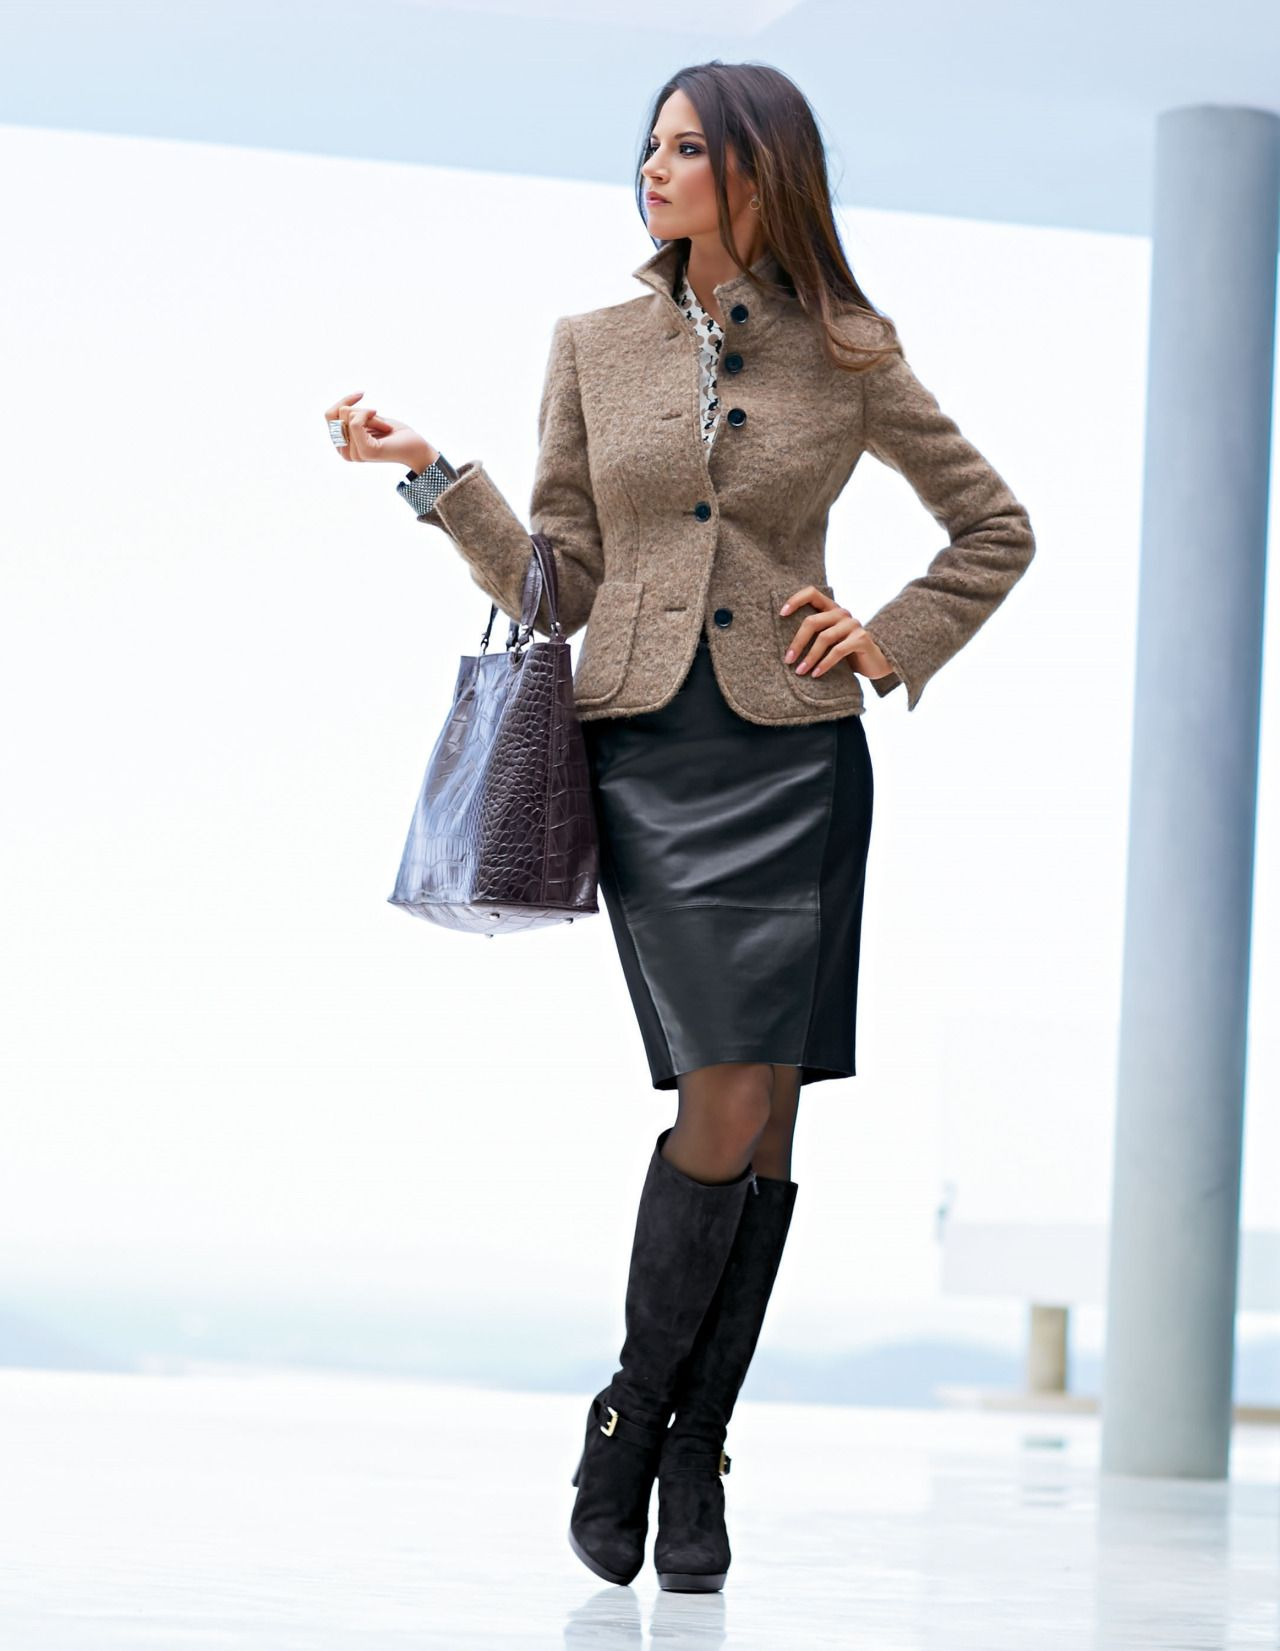 Skirt suits, uniforms, amazing dresses... | Ladies in Boots 3 ...